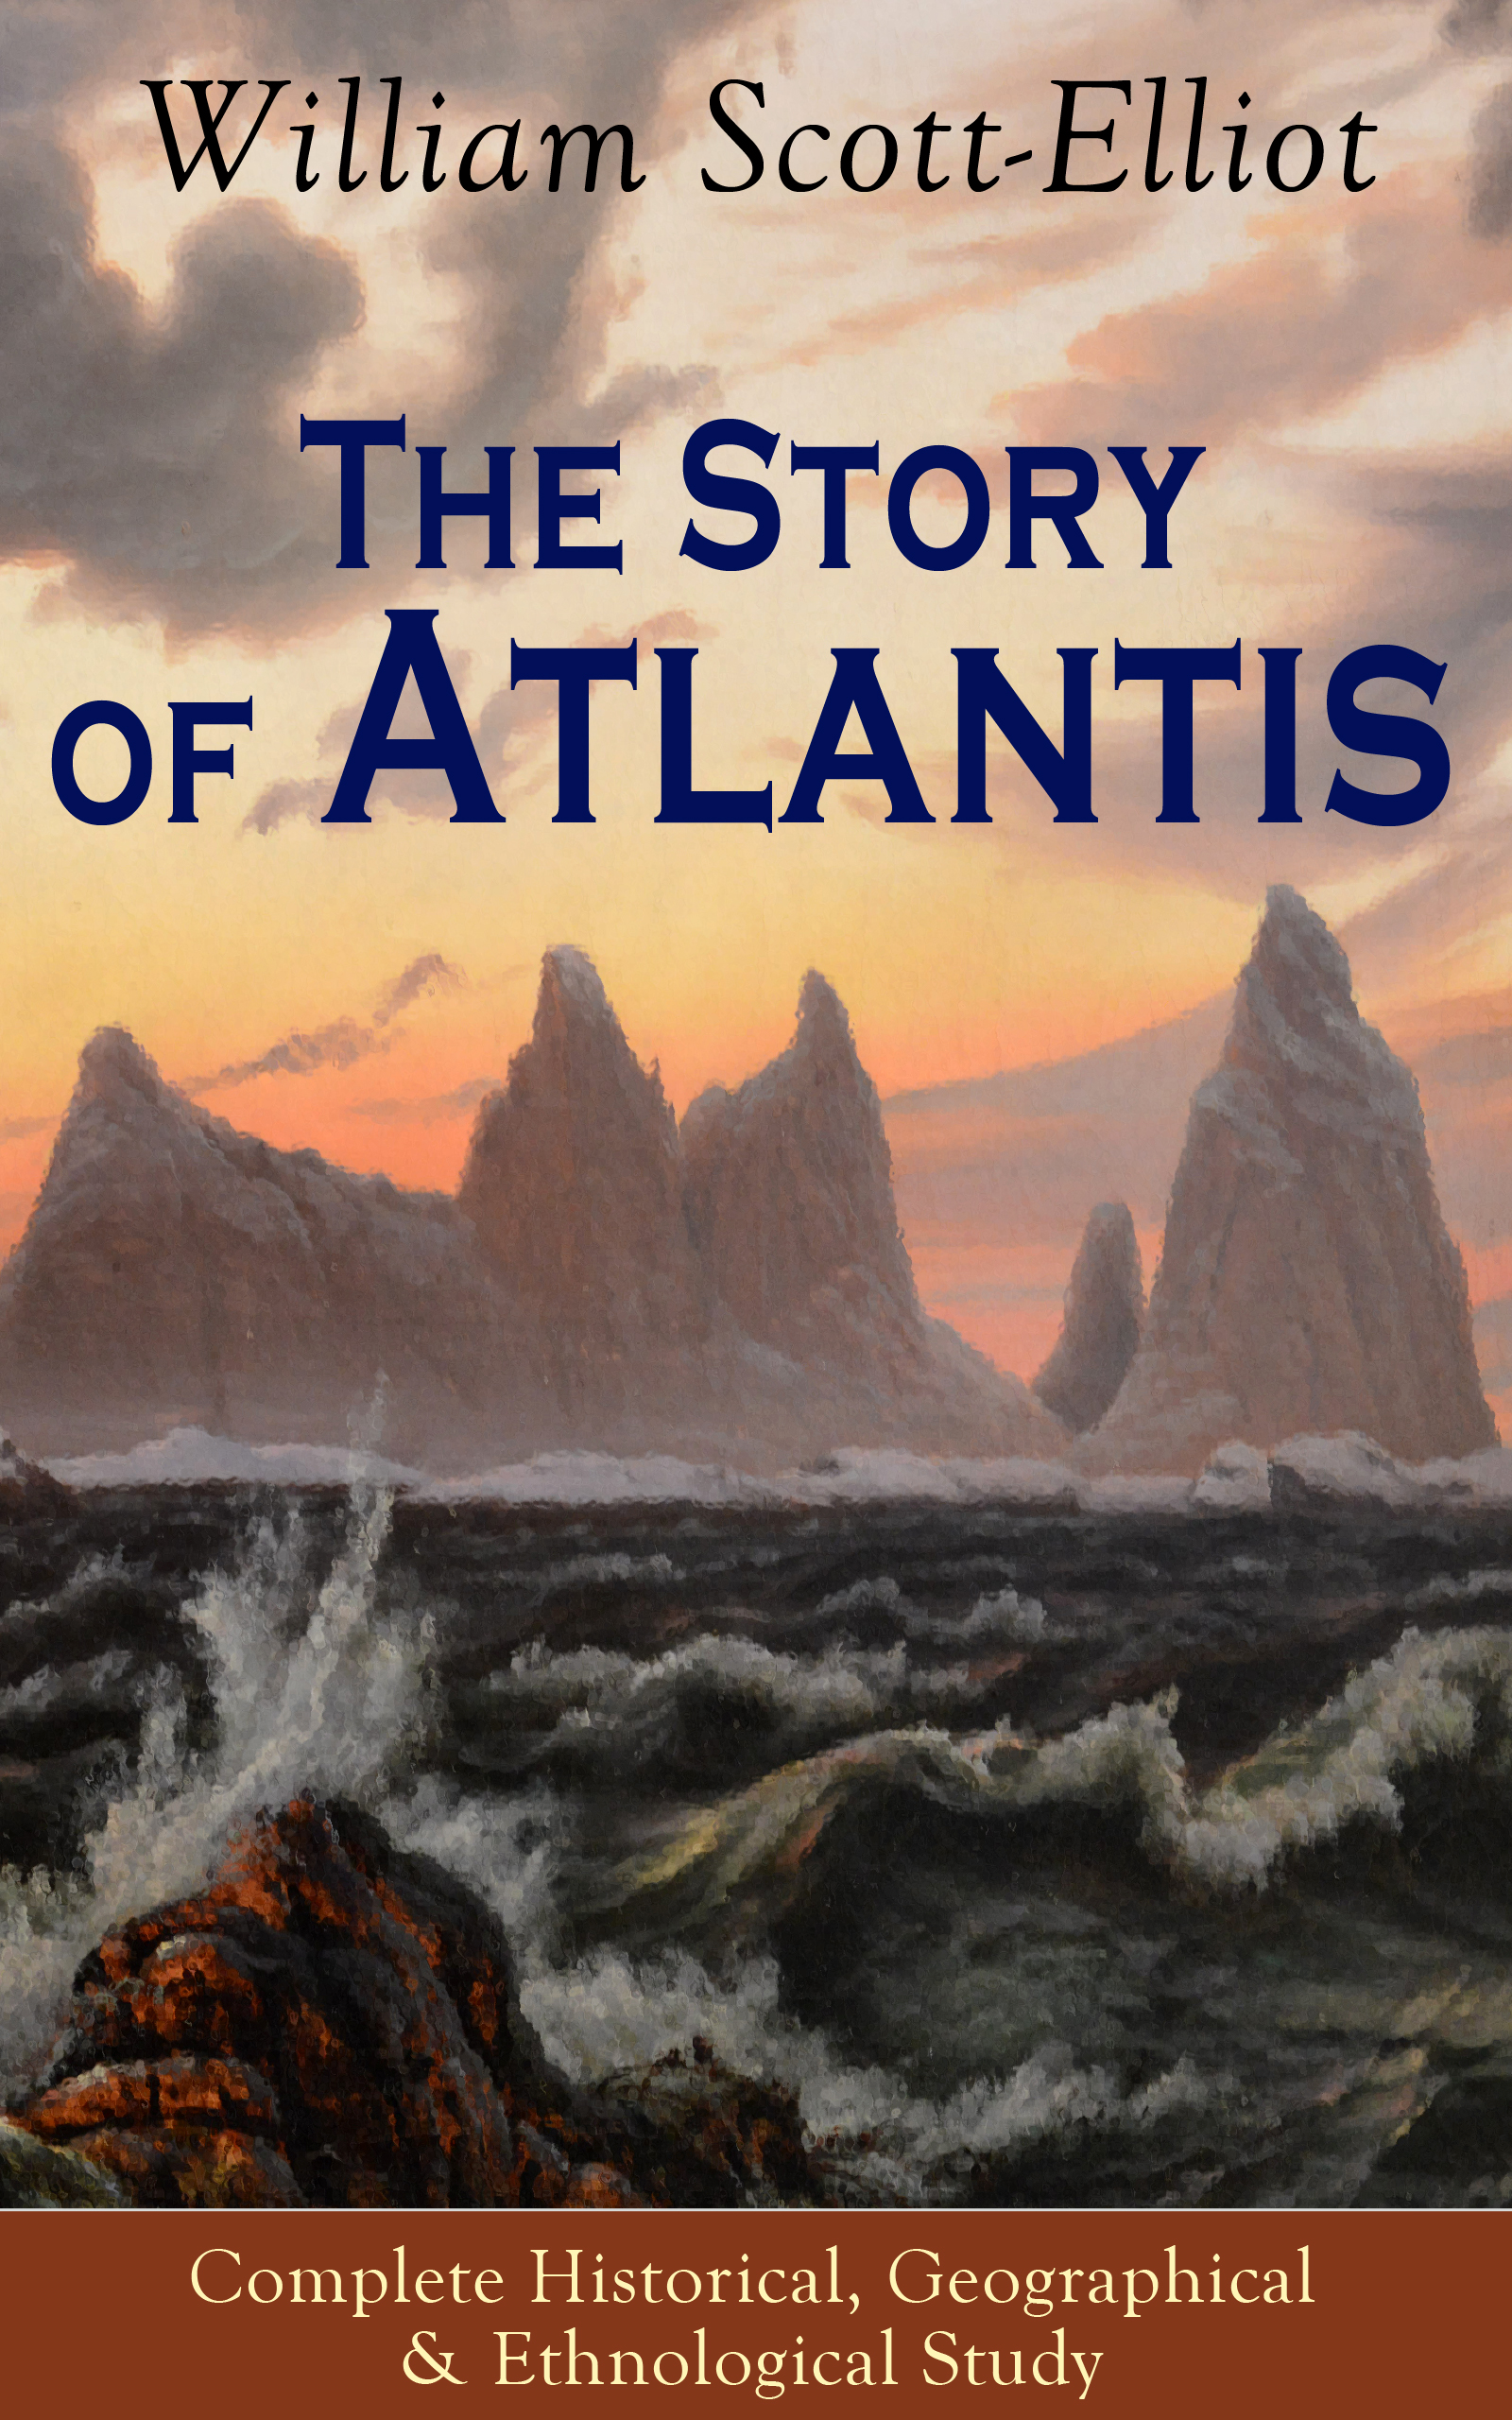 William Scott-Elliot The Story of Atlantis - Complete Historical, Geographical & Ethnological Study